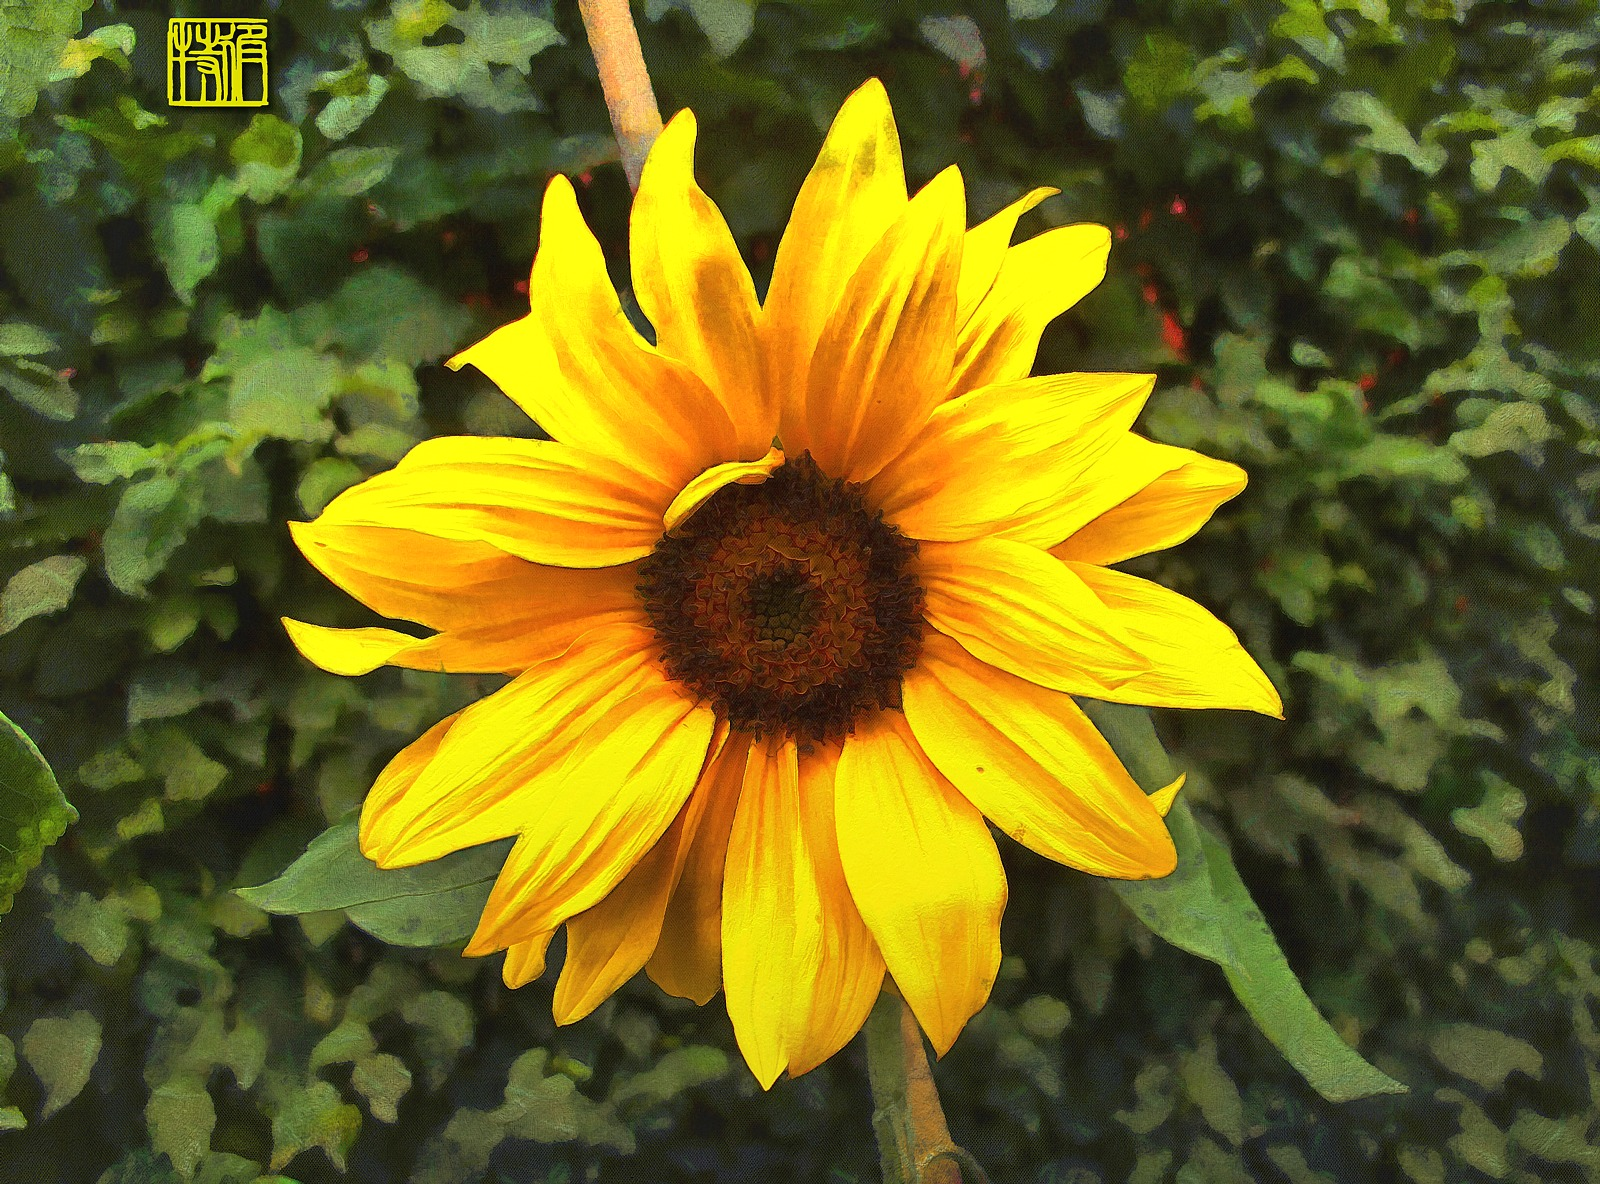 Sunflower June__Stellato__v6.jpg